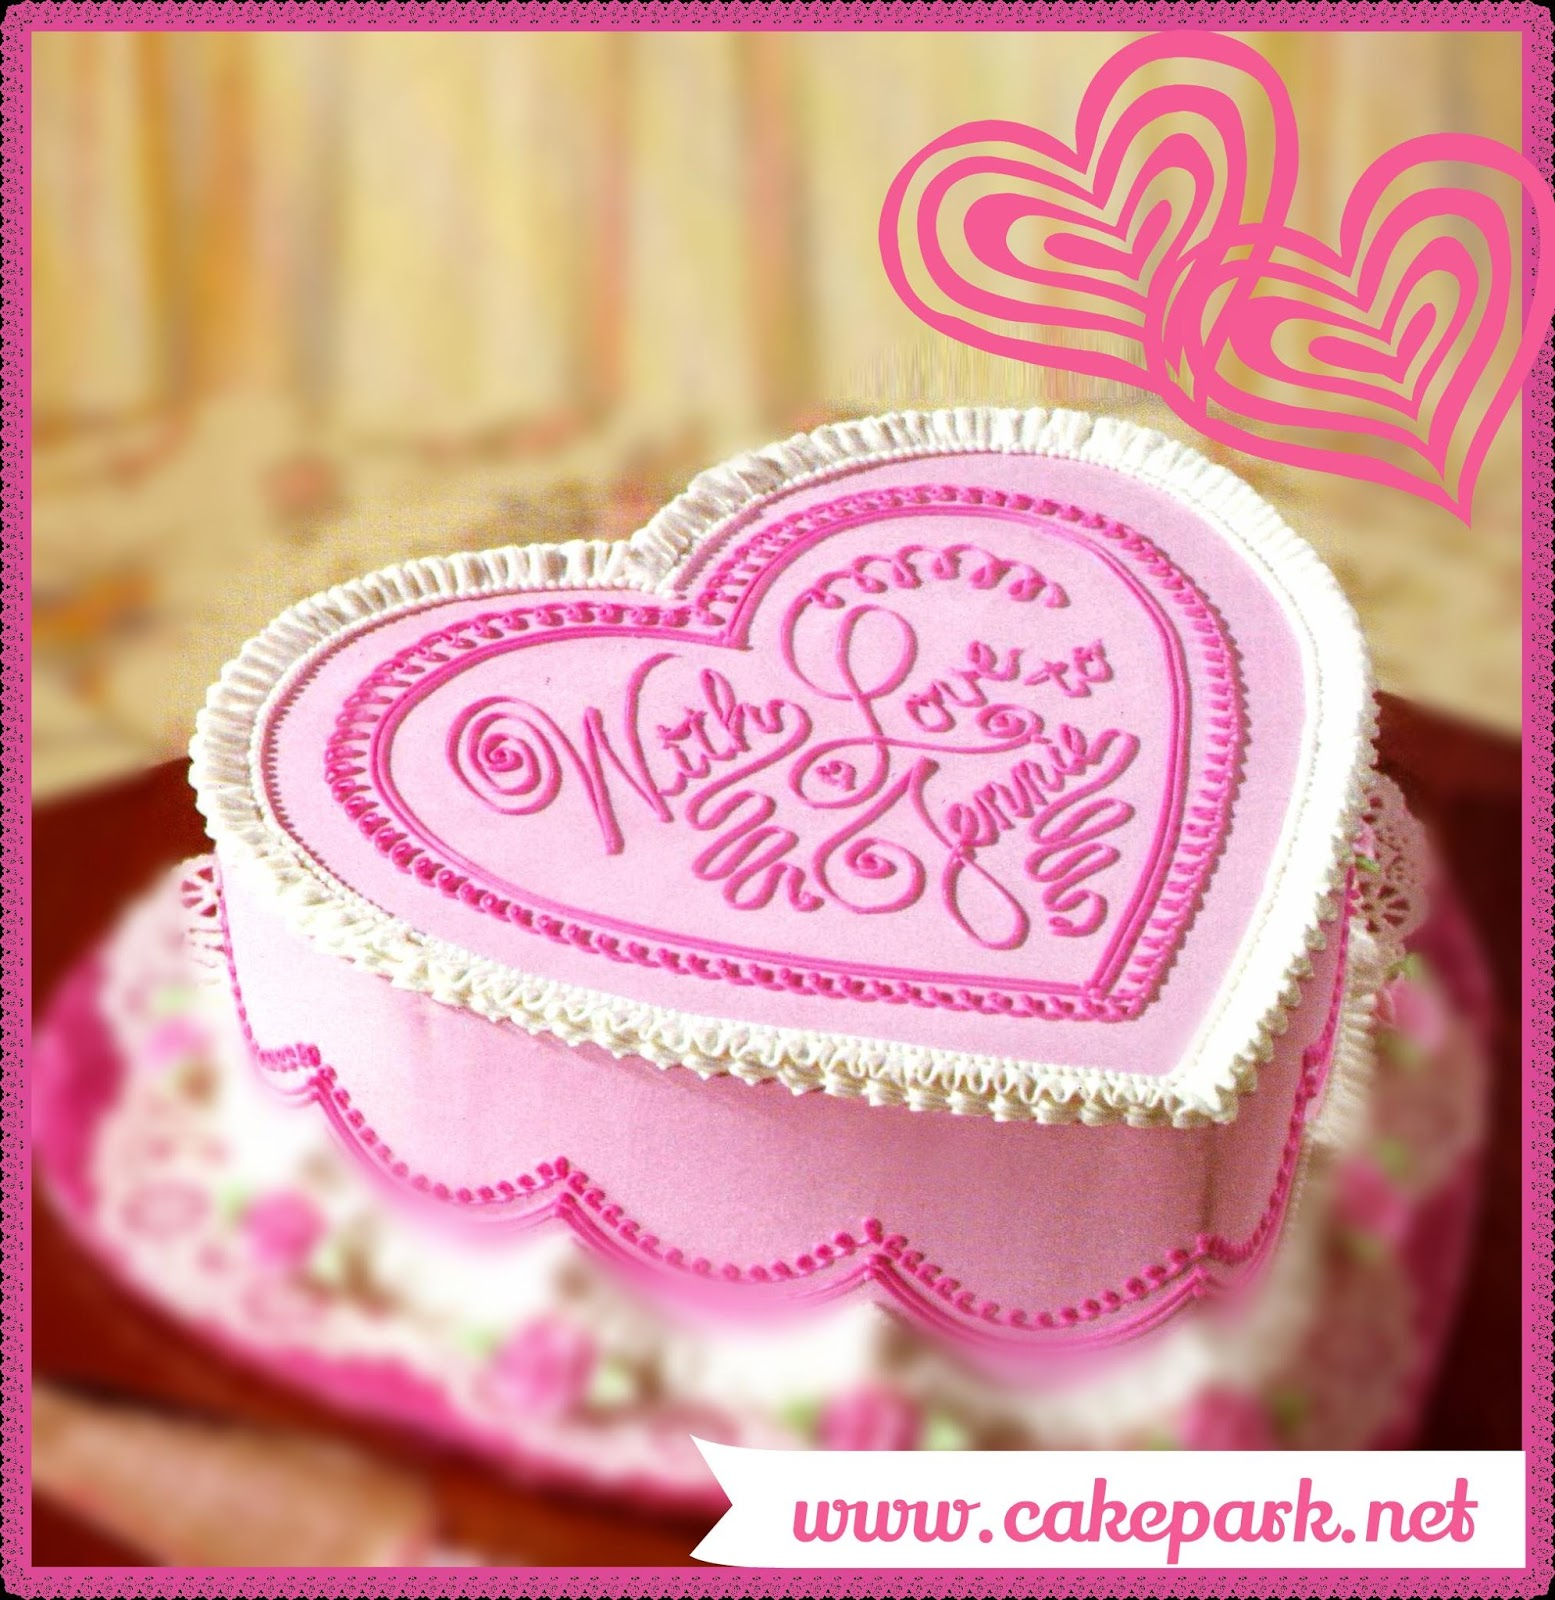 CAKE PARK Order cakes online in Chennai and Bangalore courtesy of